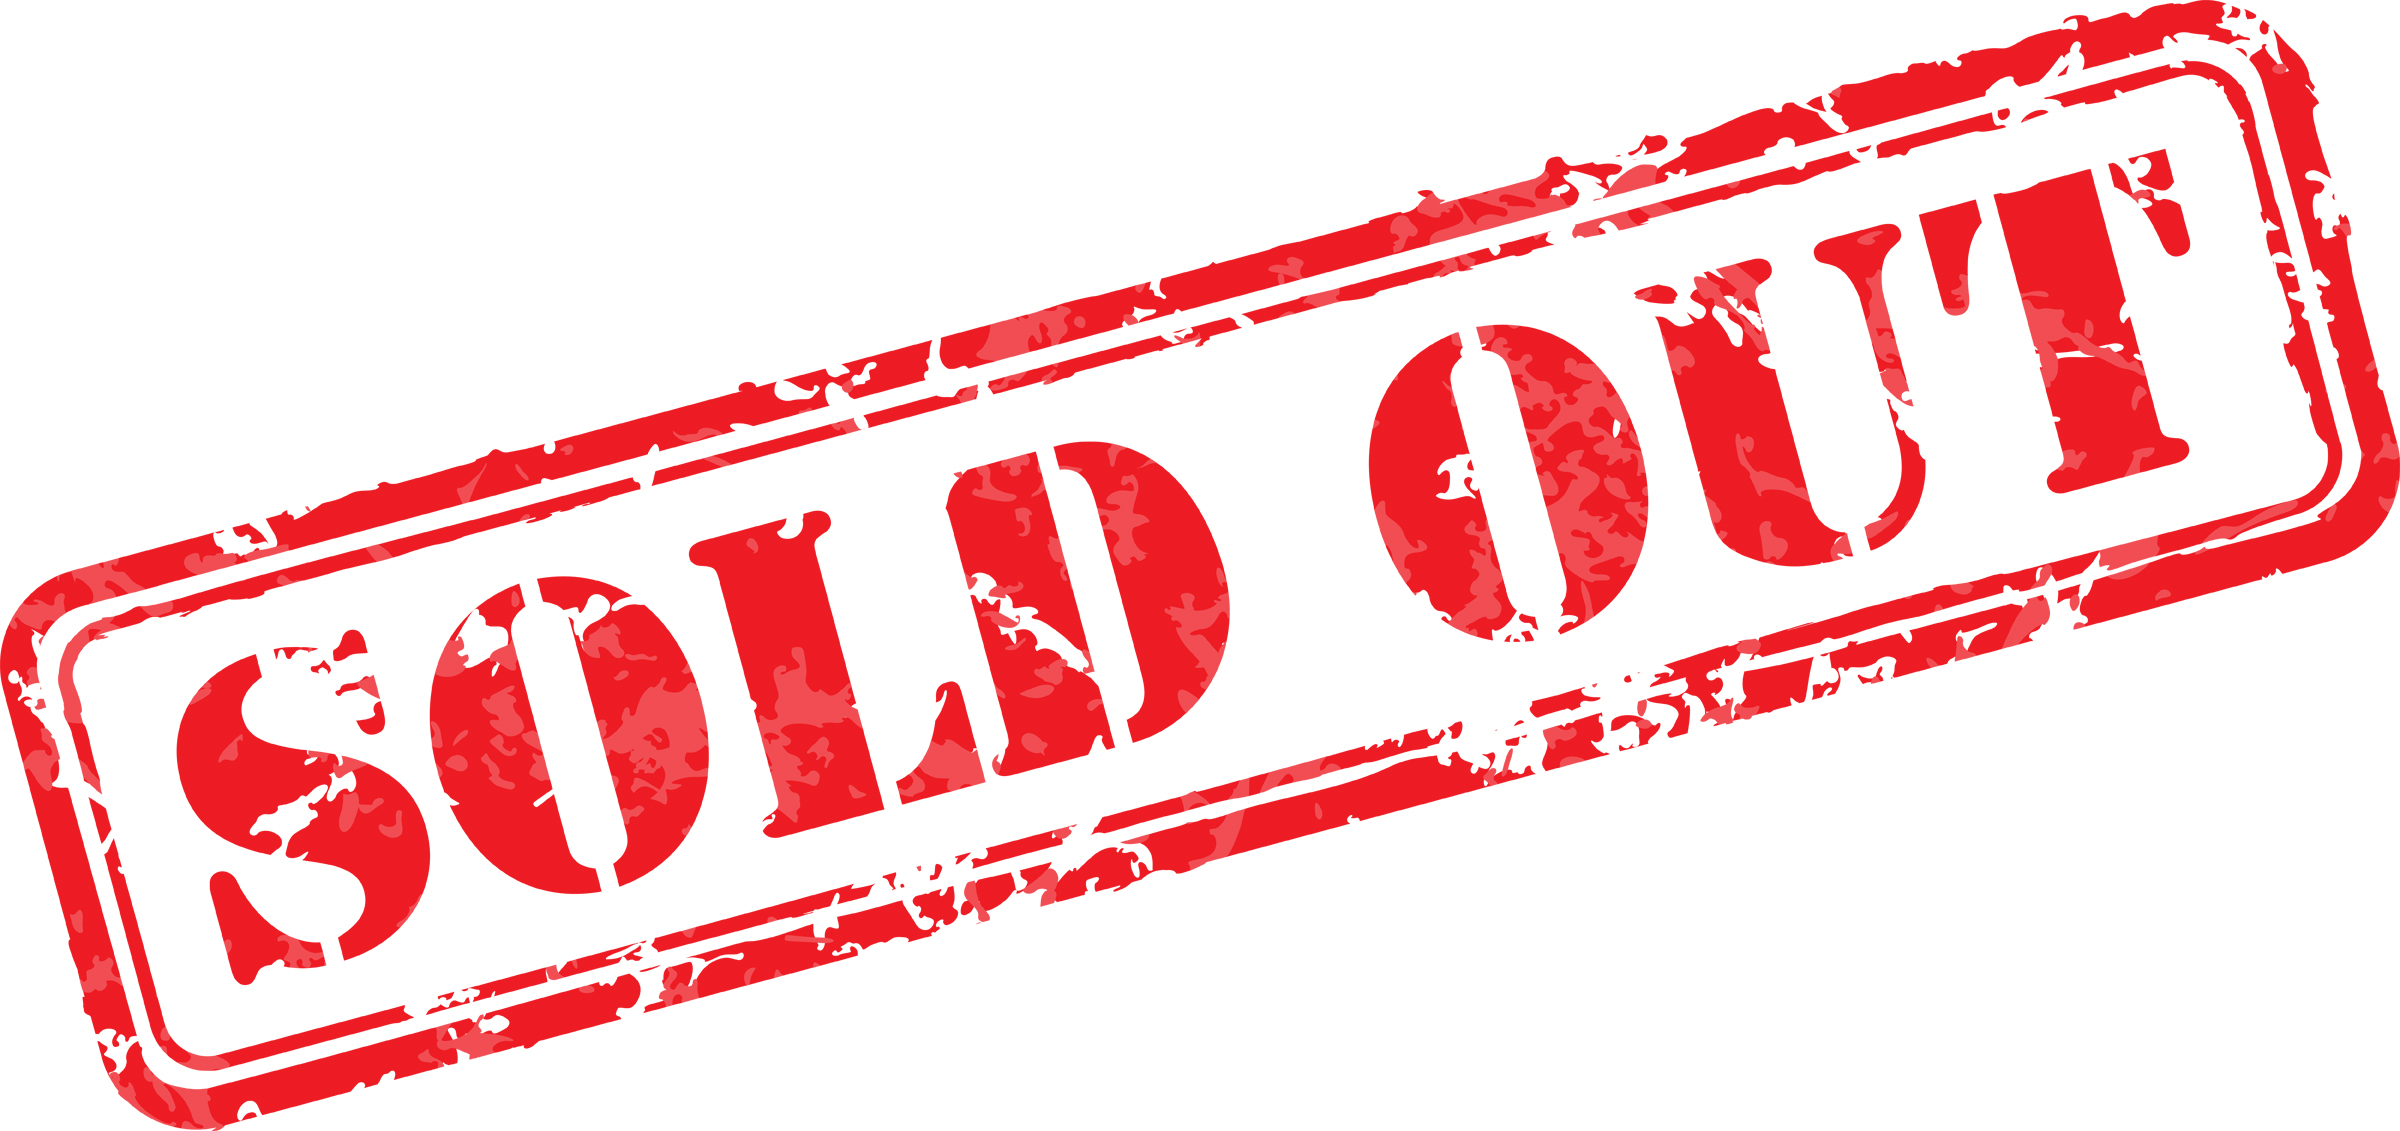 Sold Out Png Image #19951 - Sold Out, Transparent background PNG HD thumbnail